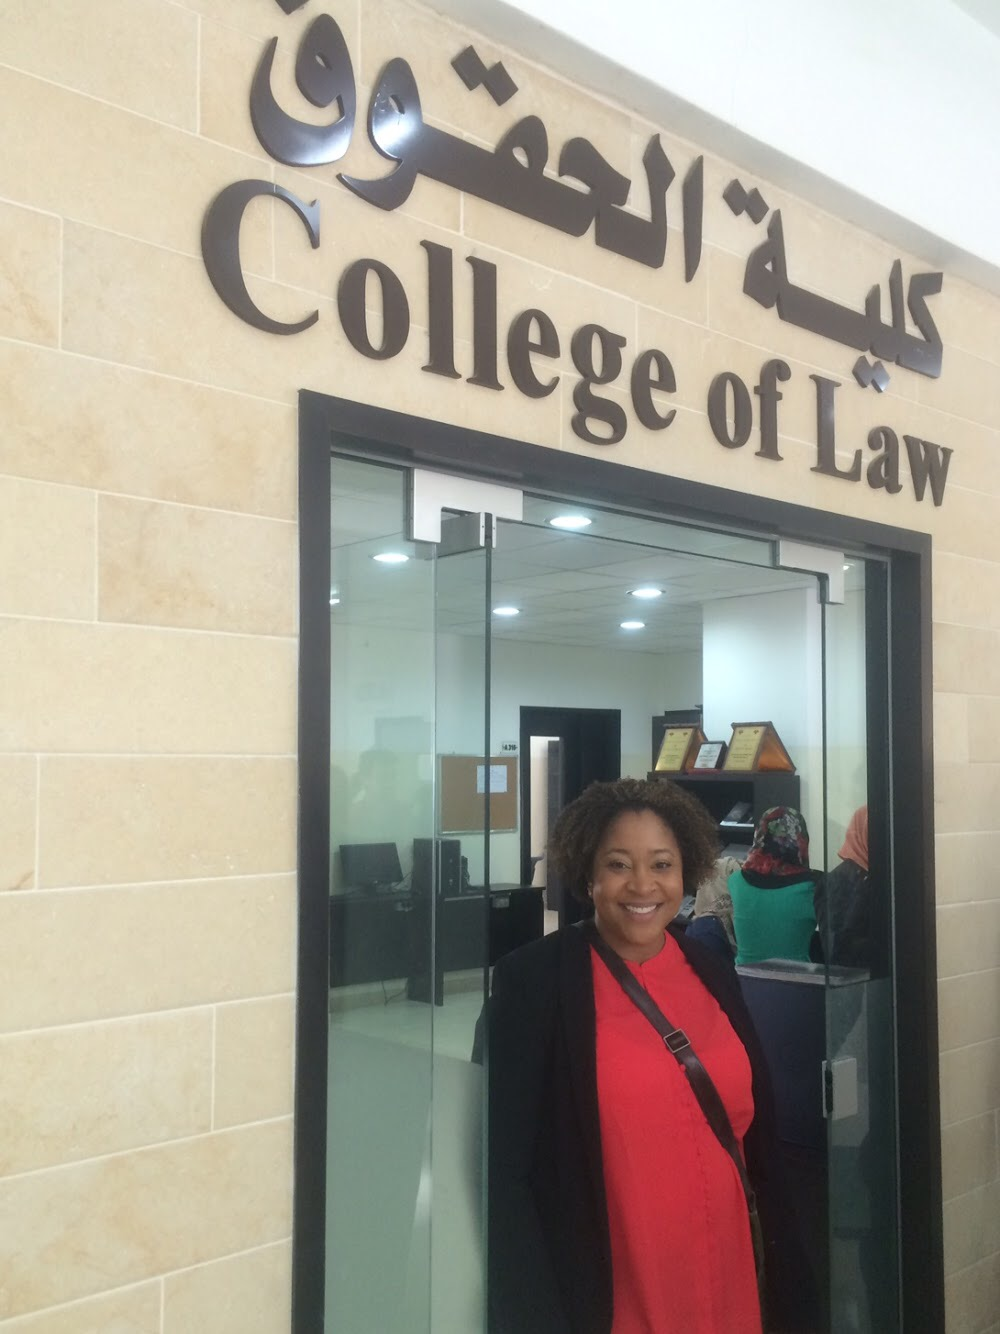 Palestine Lecture College of Law 2015.jpg